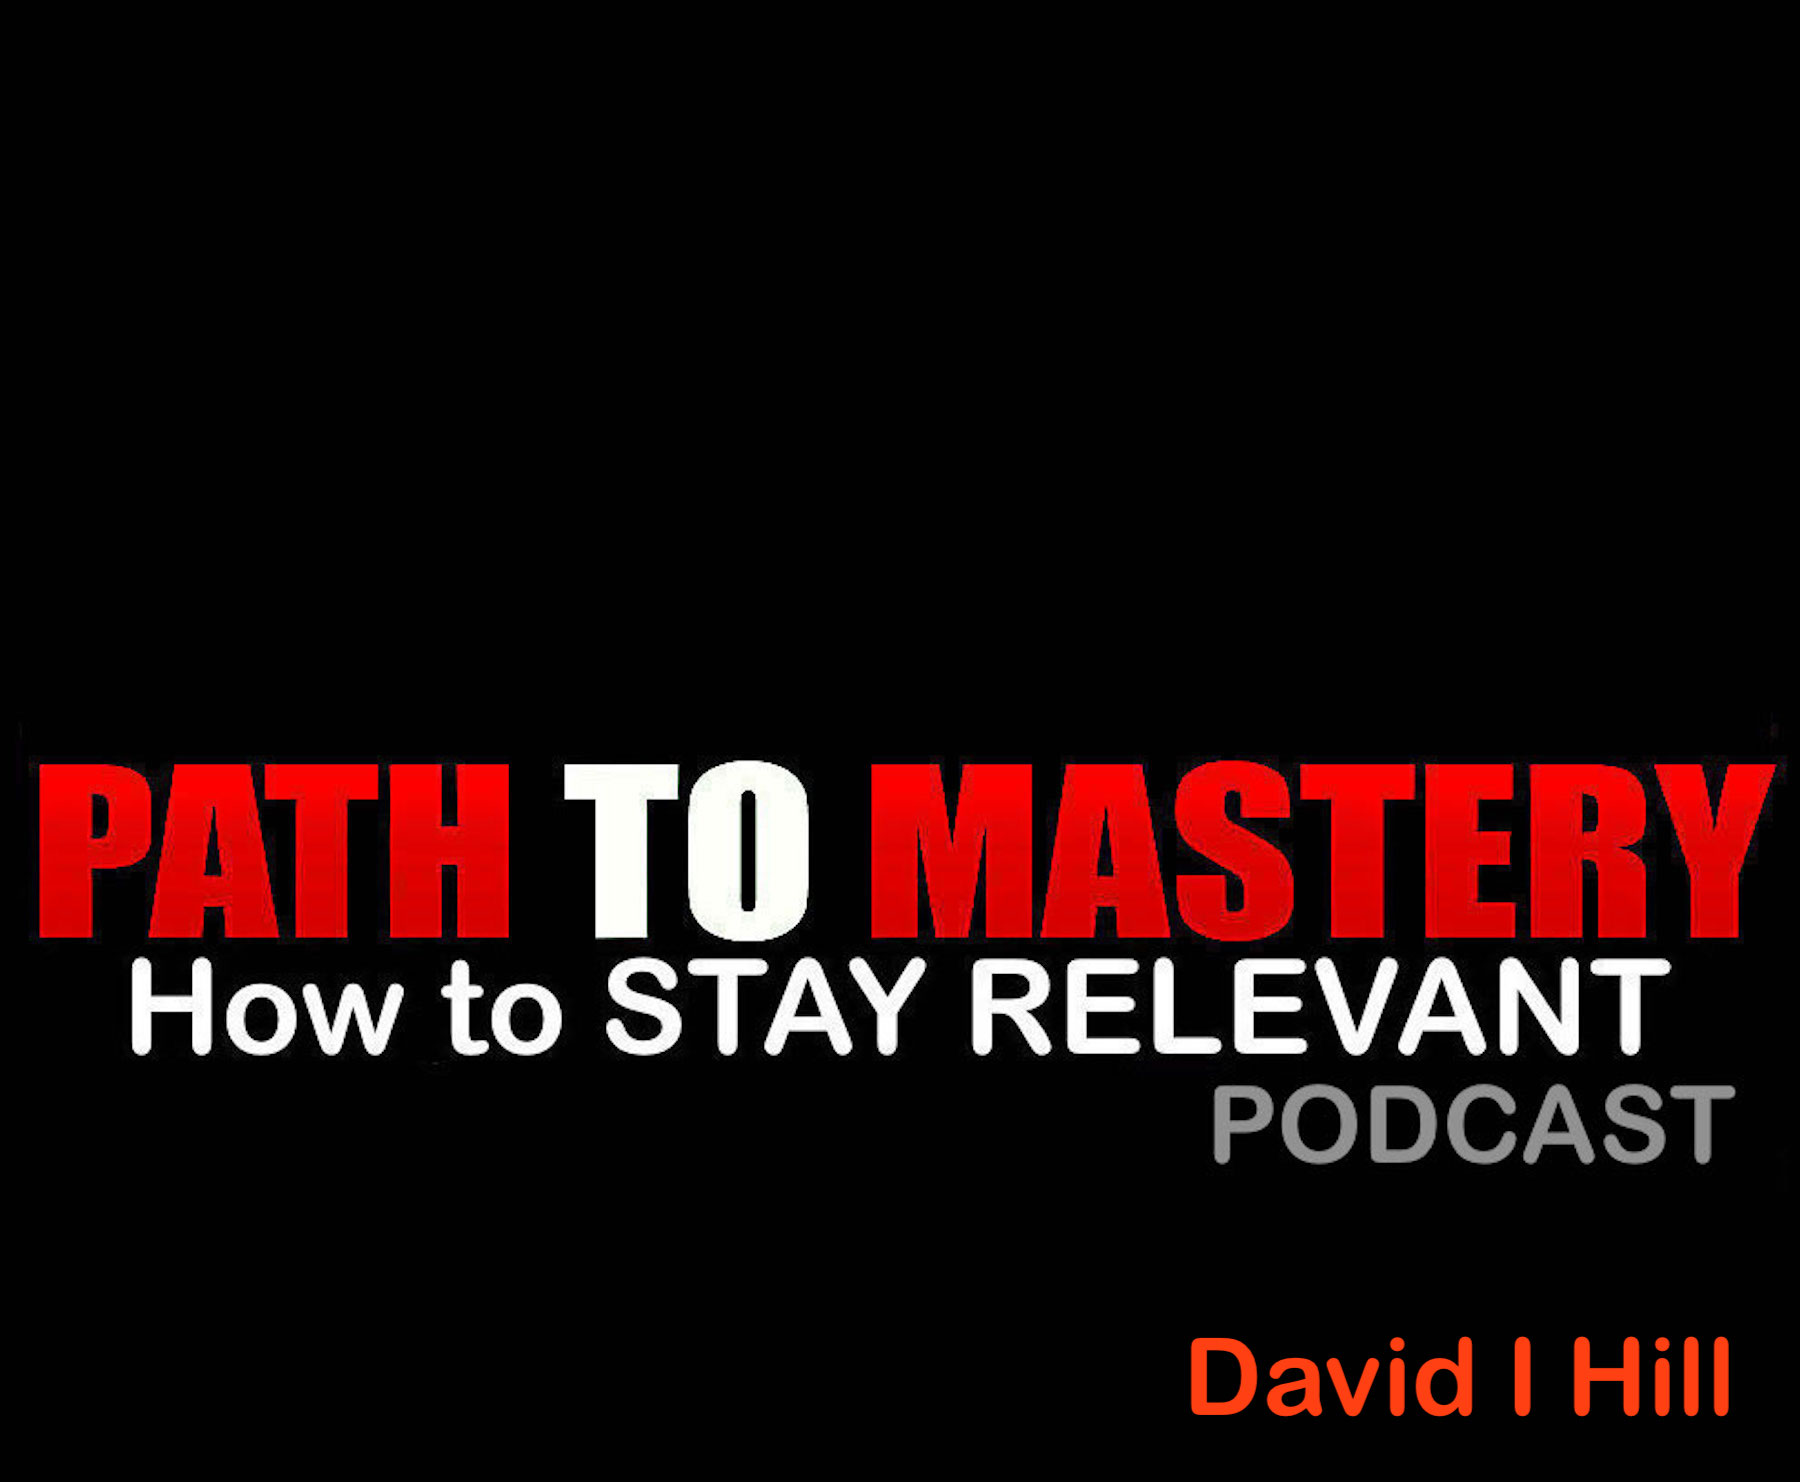 Path to Mastery - Podcast – Podtail